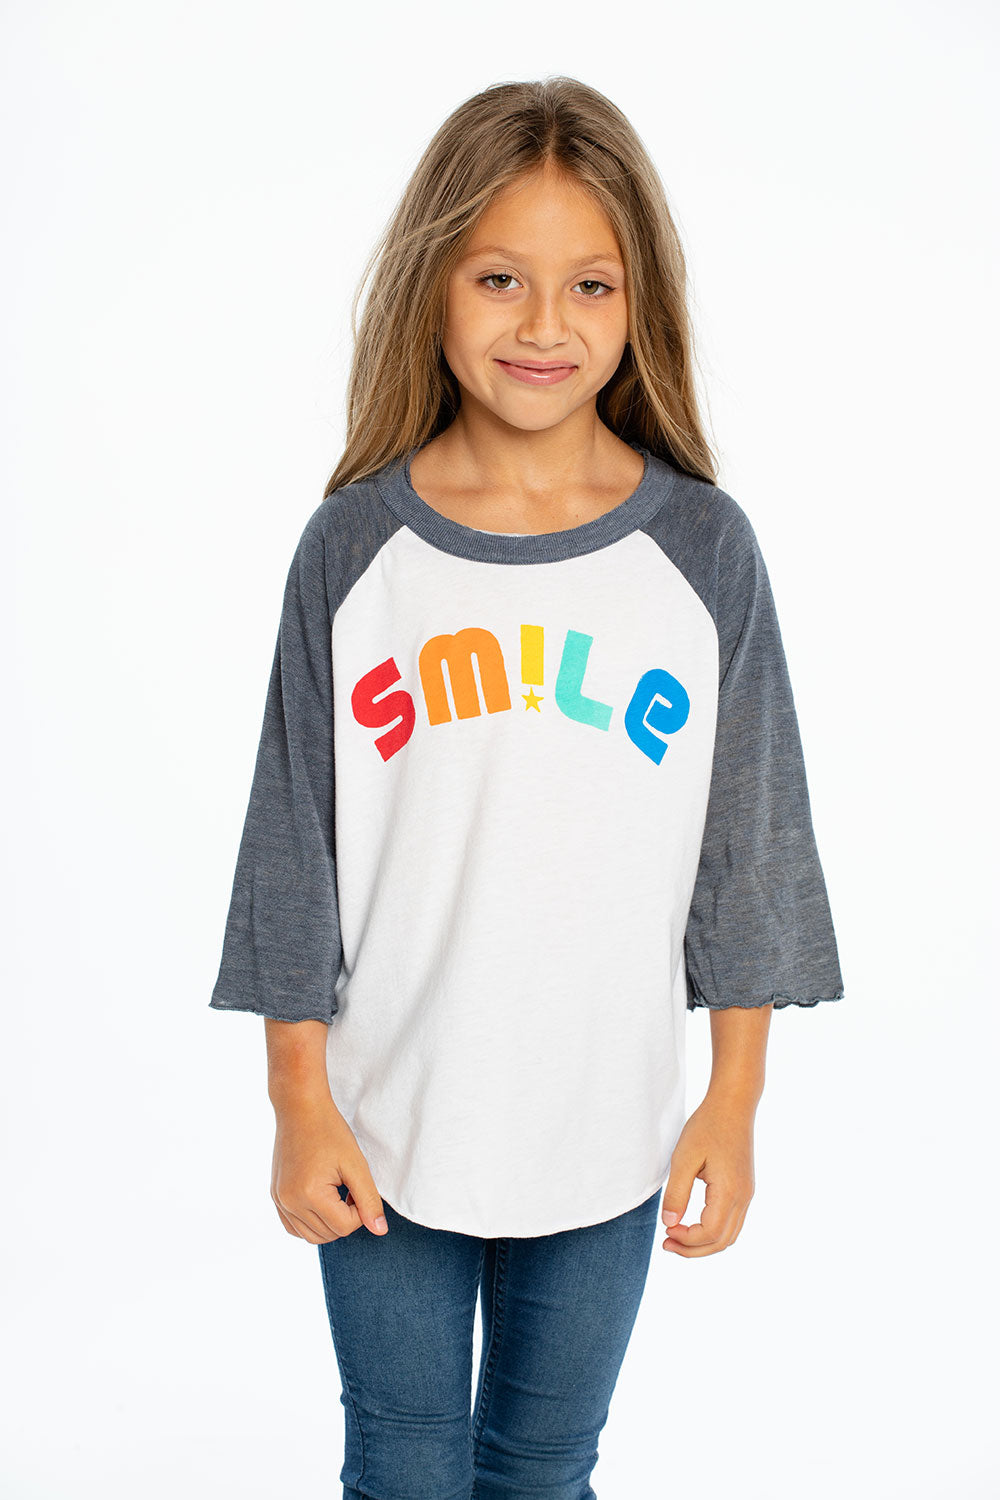 Smile, GIRLS, chaserbrand.com,chaser clothing,chaser apparel,chaser los angeles